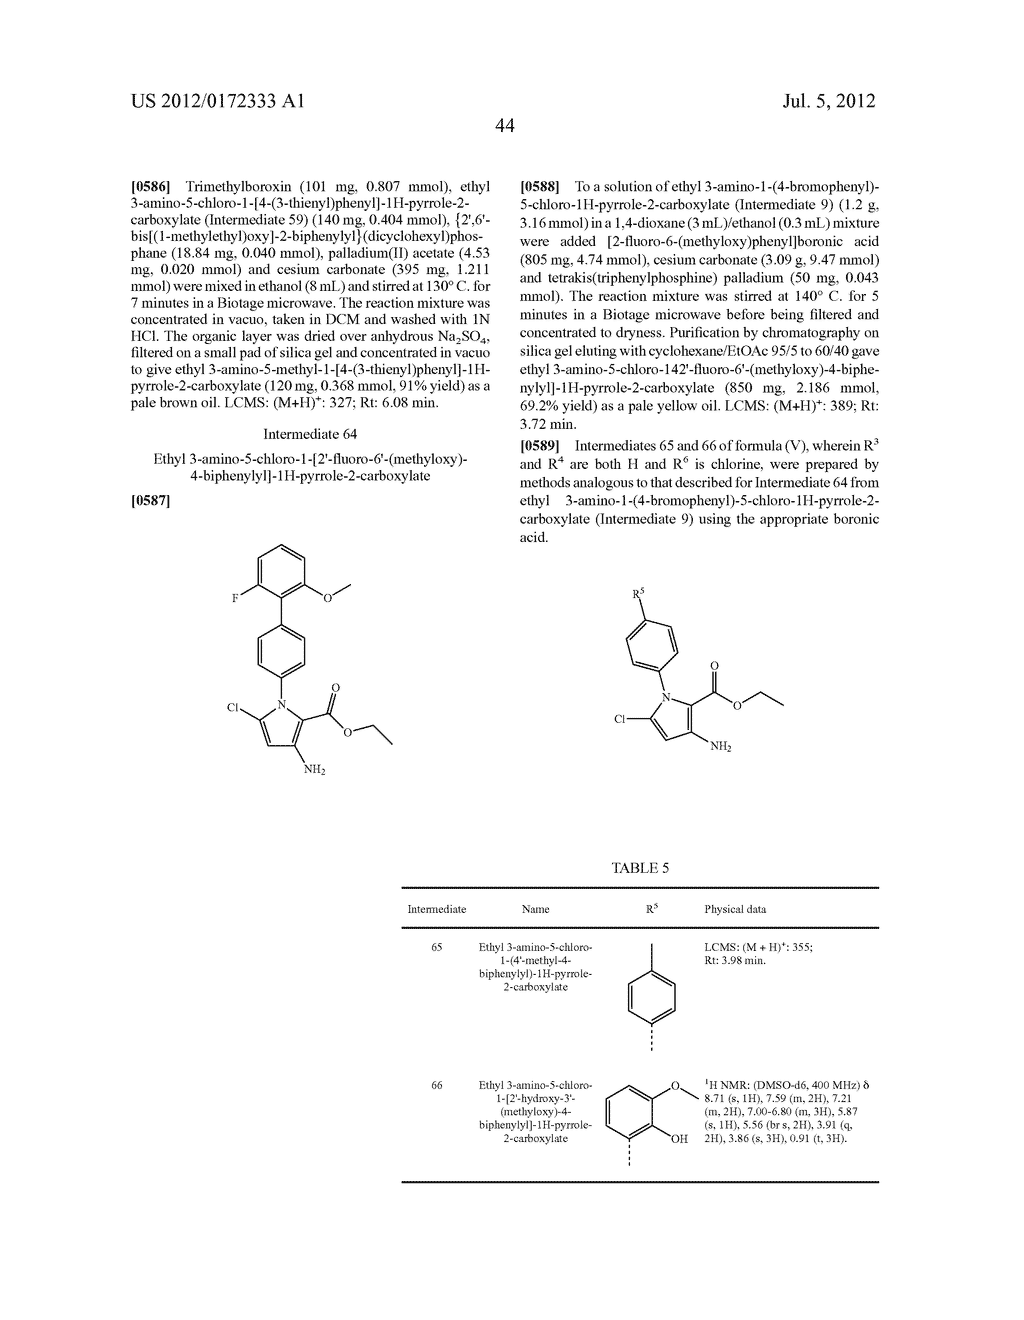 PYRROLO-PYRIDINE DERIVATIVES AS ACTIVATORS OF AMPK - diagram, schematic, and image 45